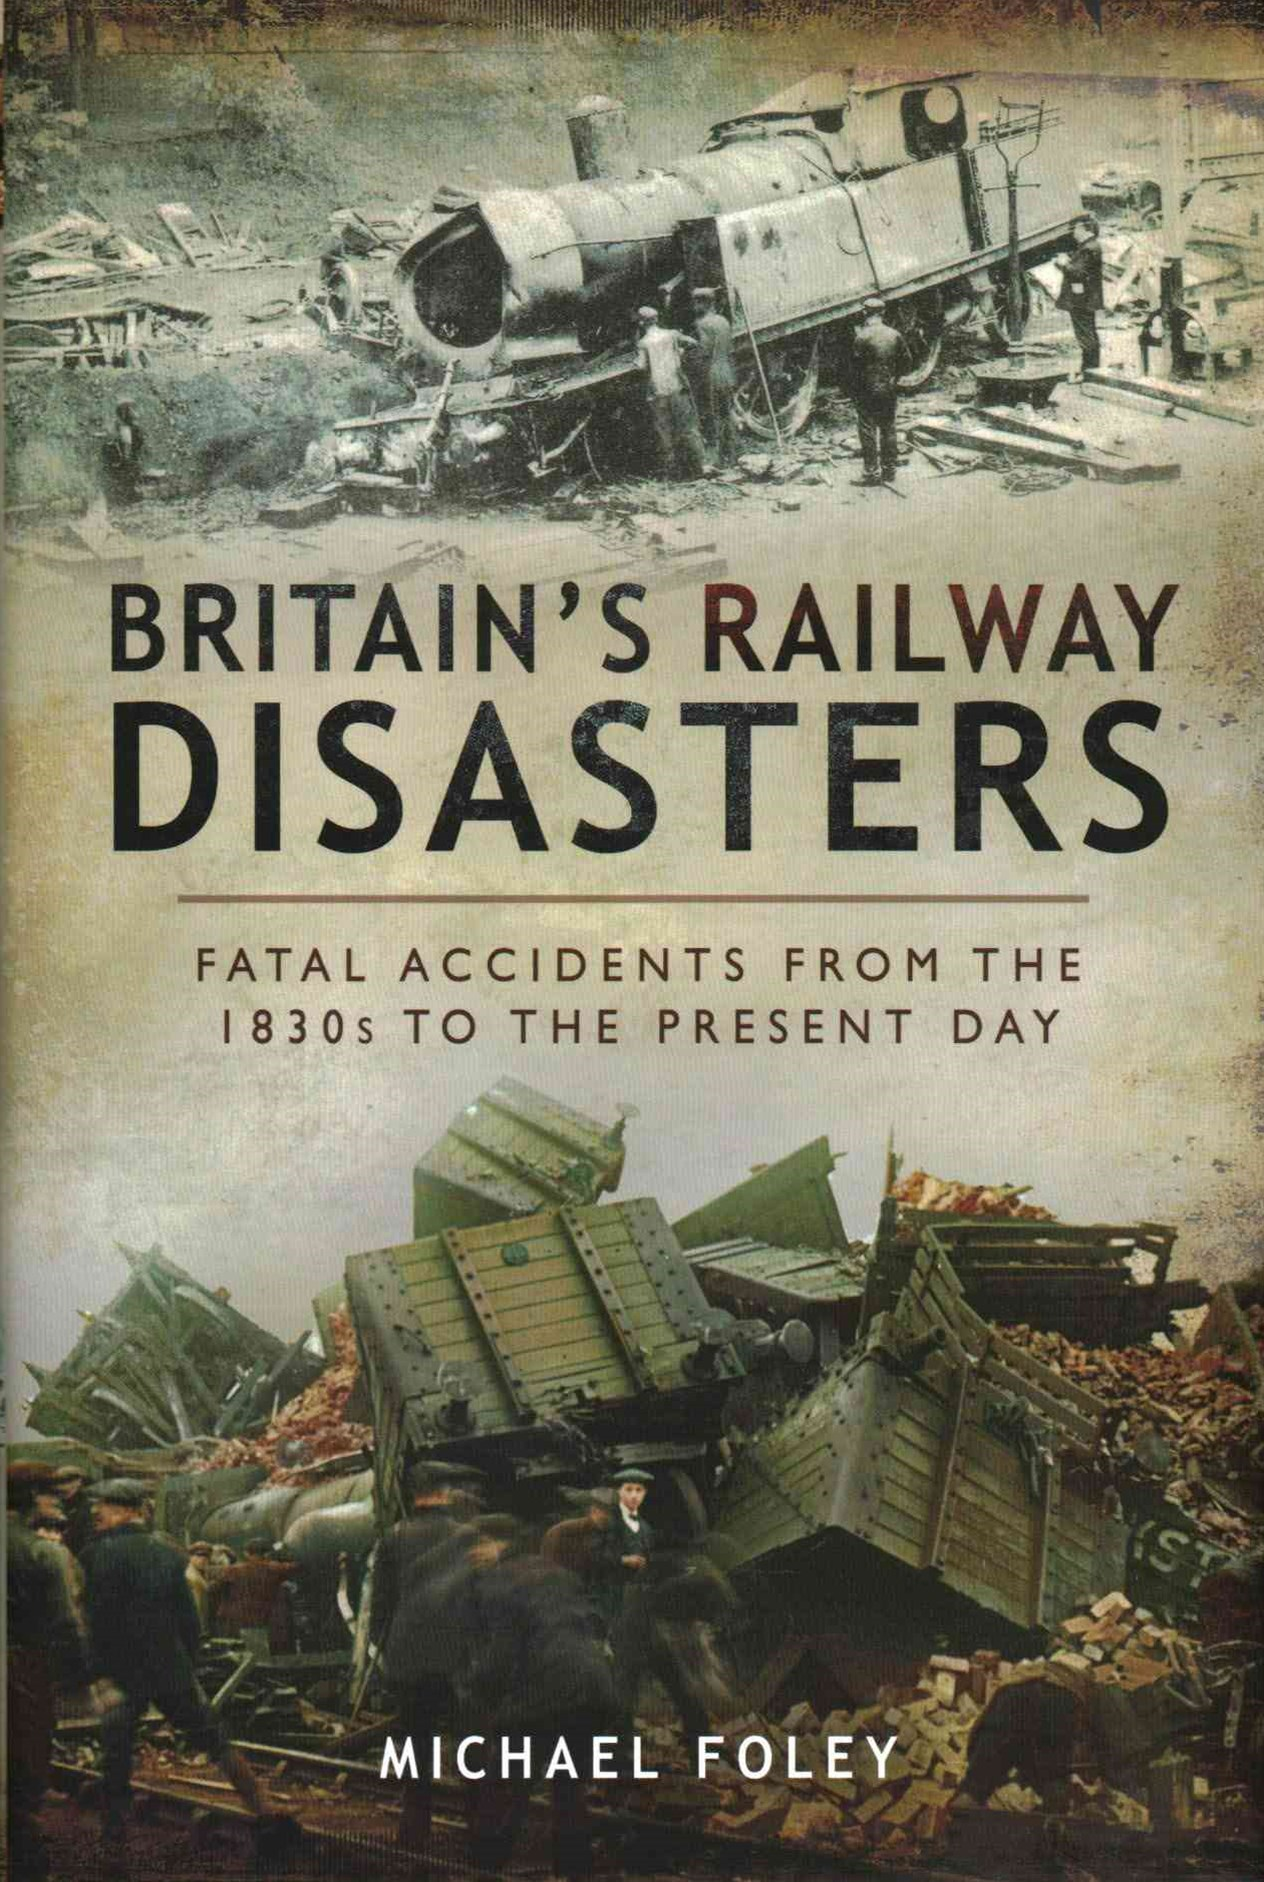 Britain's Railways Disasters: Fatal Accidents From the 1830s to the Present